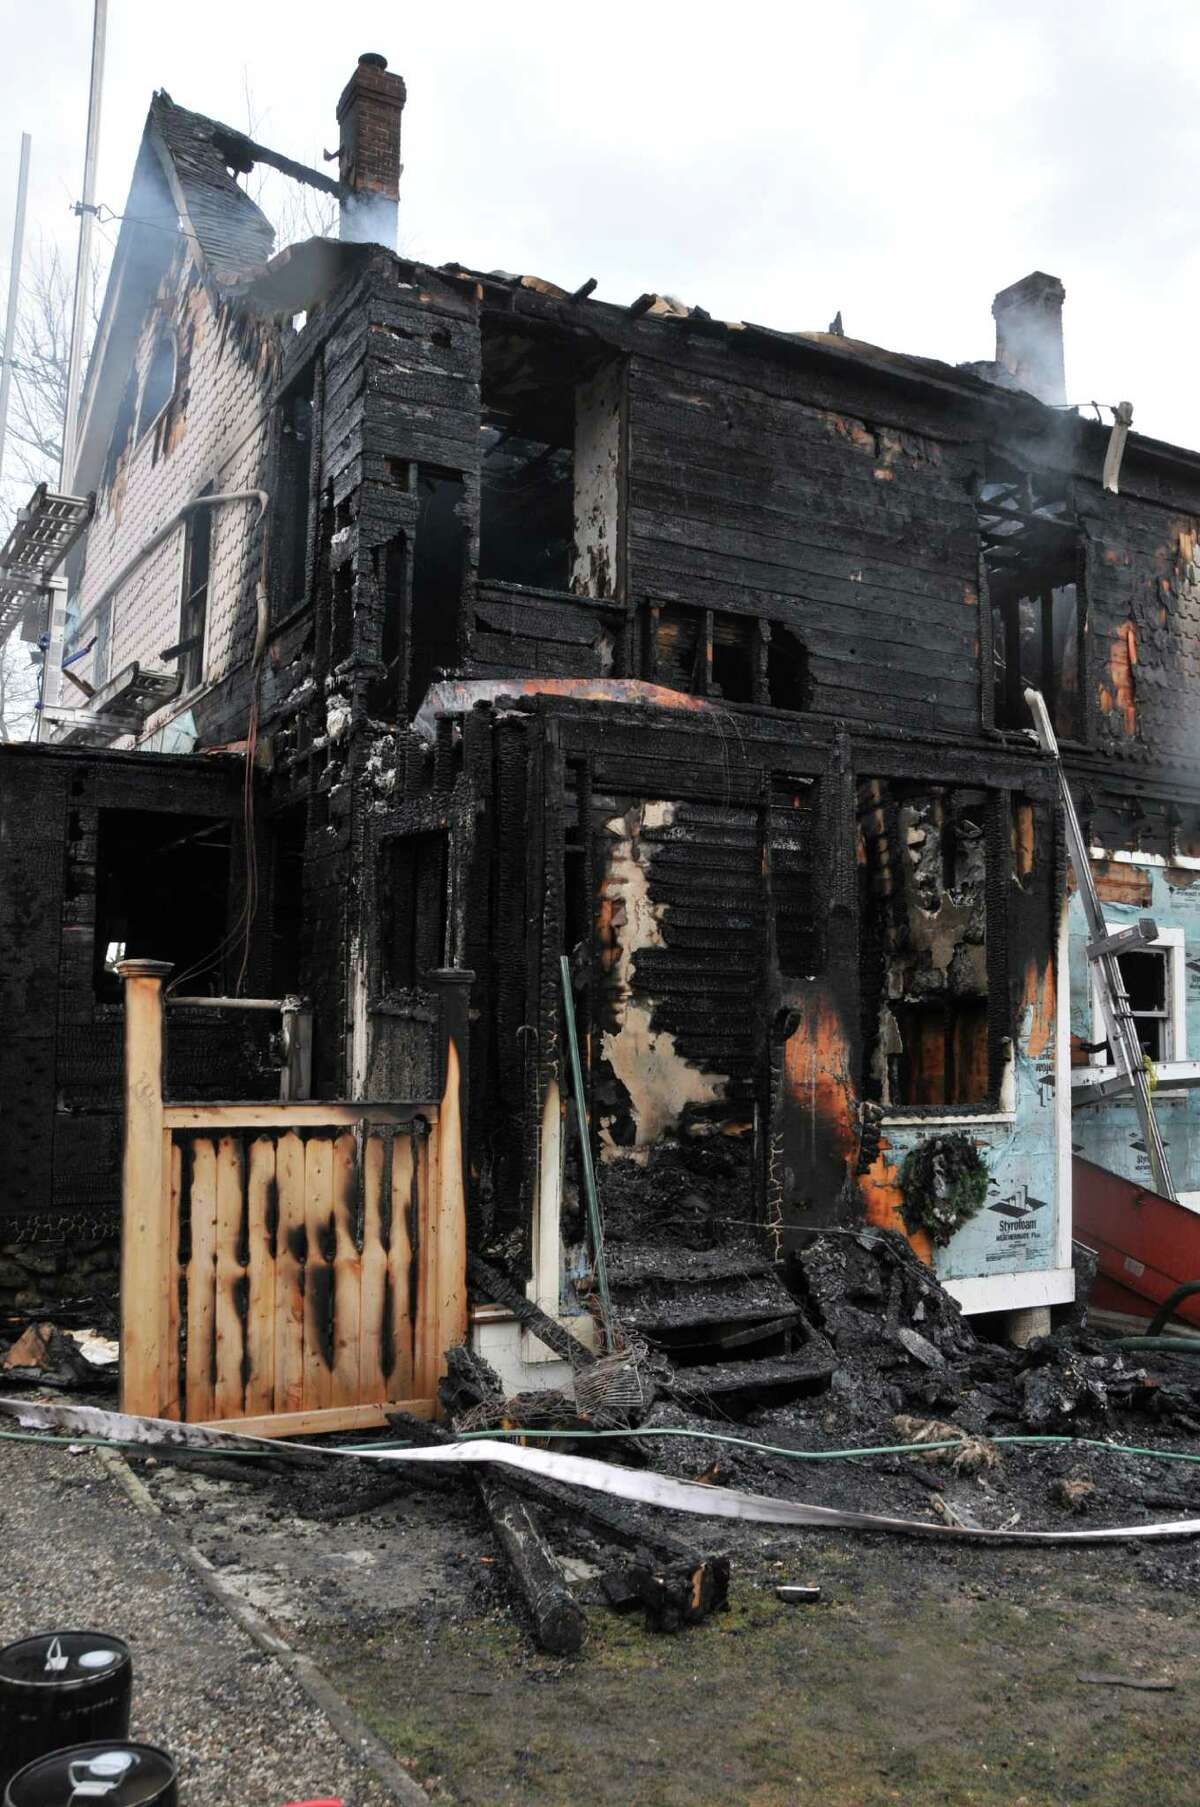 A view of the rear mudroom of the house at 2267 Shippan Ave. The Stamford Fire Marshal's investigation into the deadly blaze concluded the fire began due to a bag of ashes placed near the door of the mudroom.